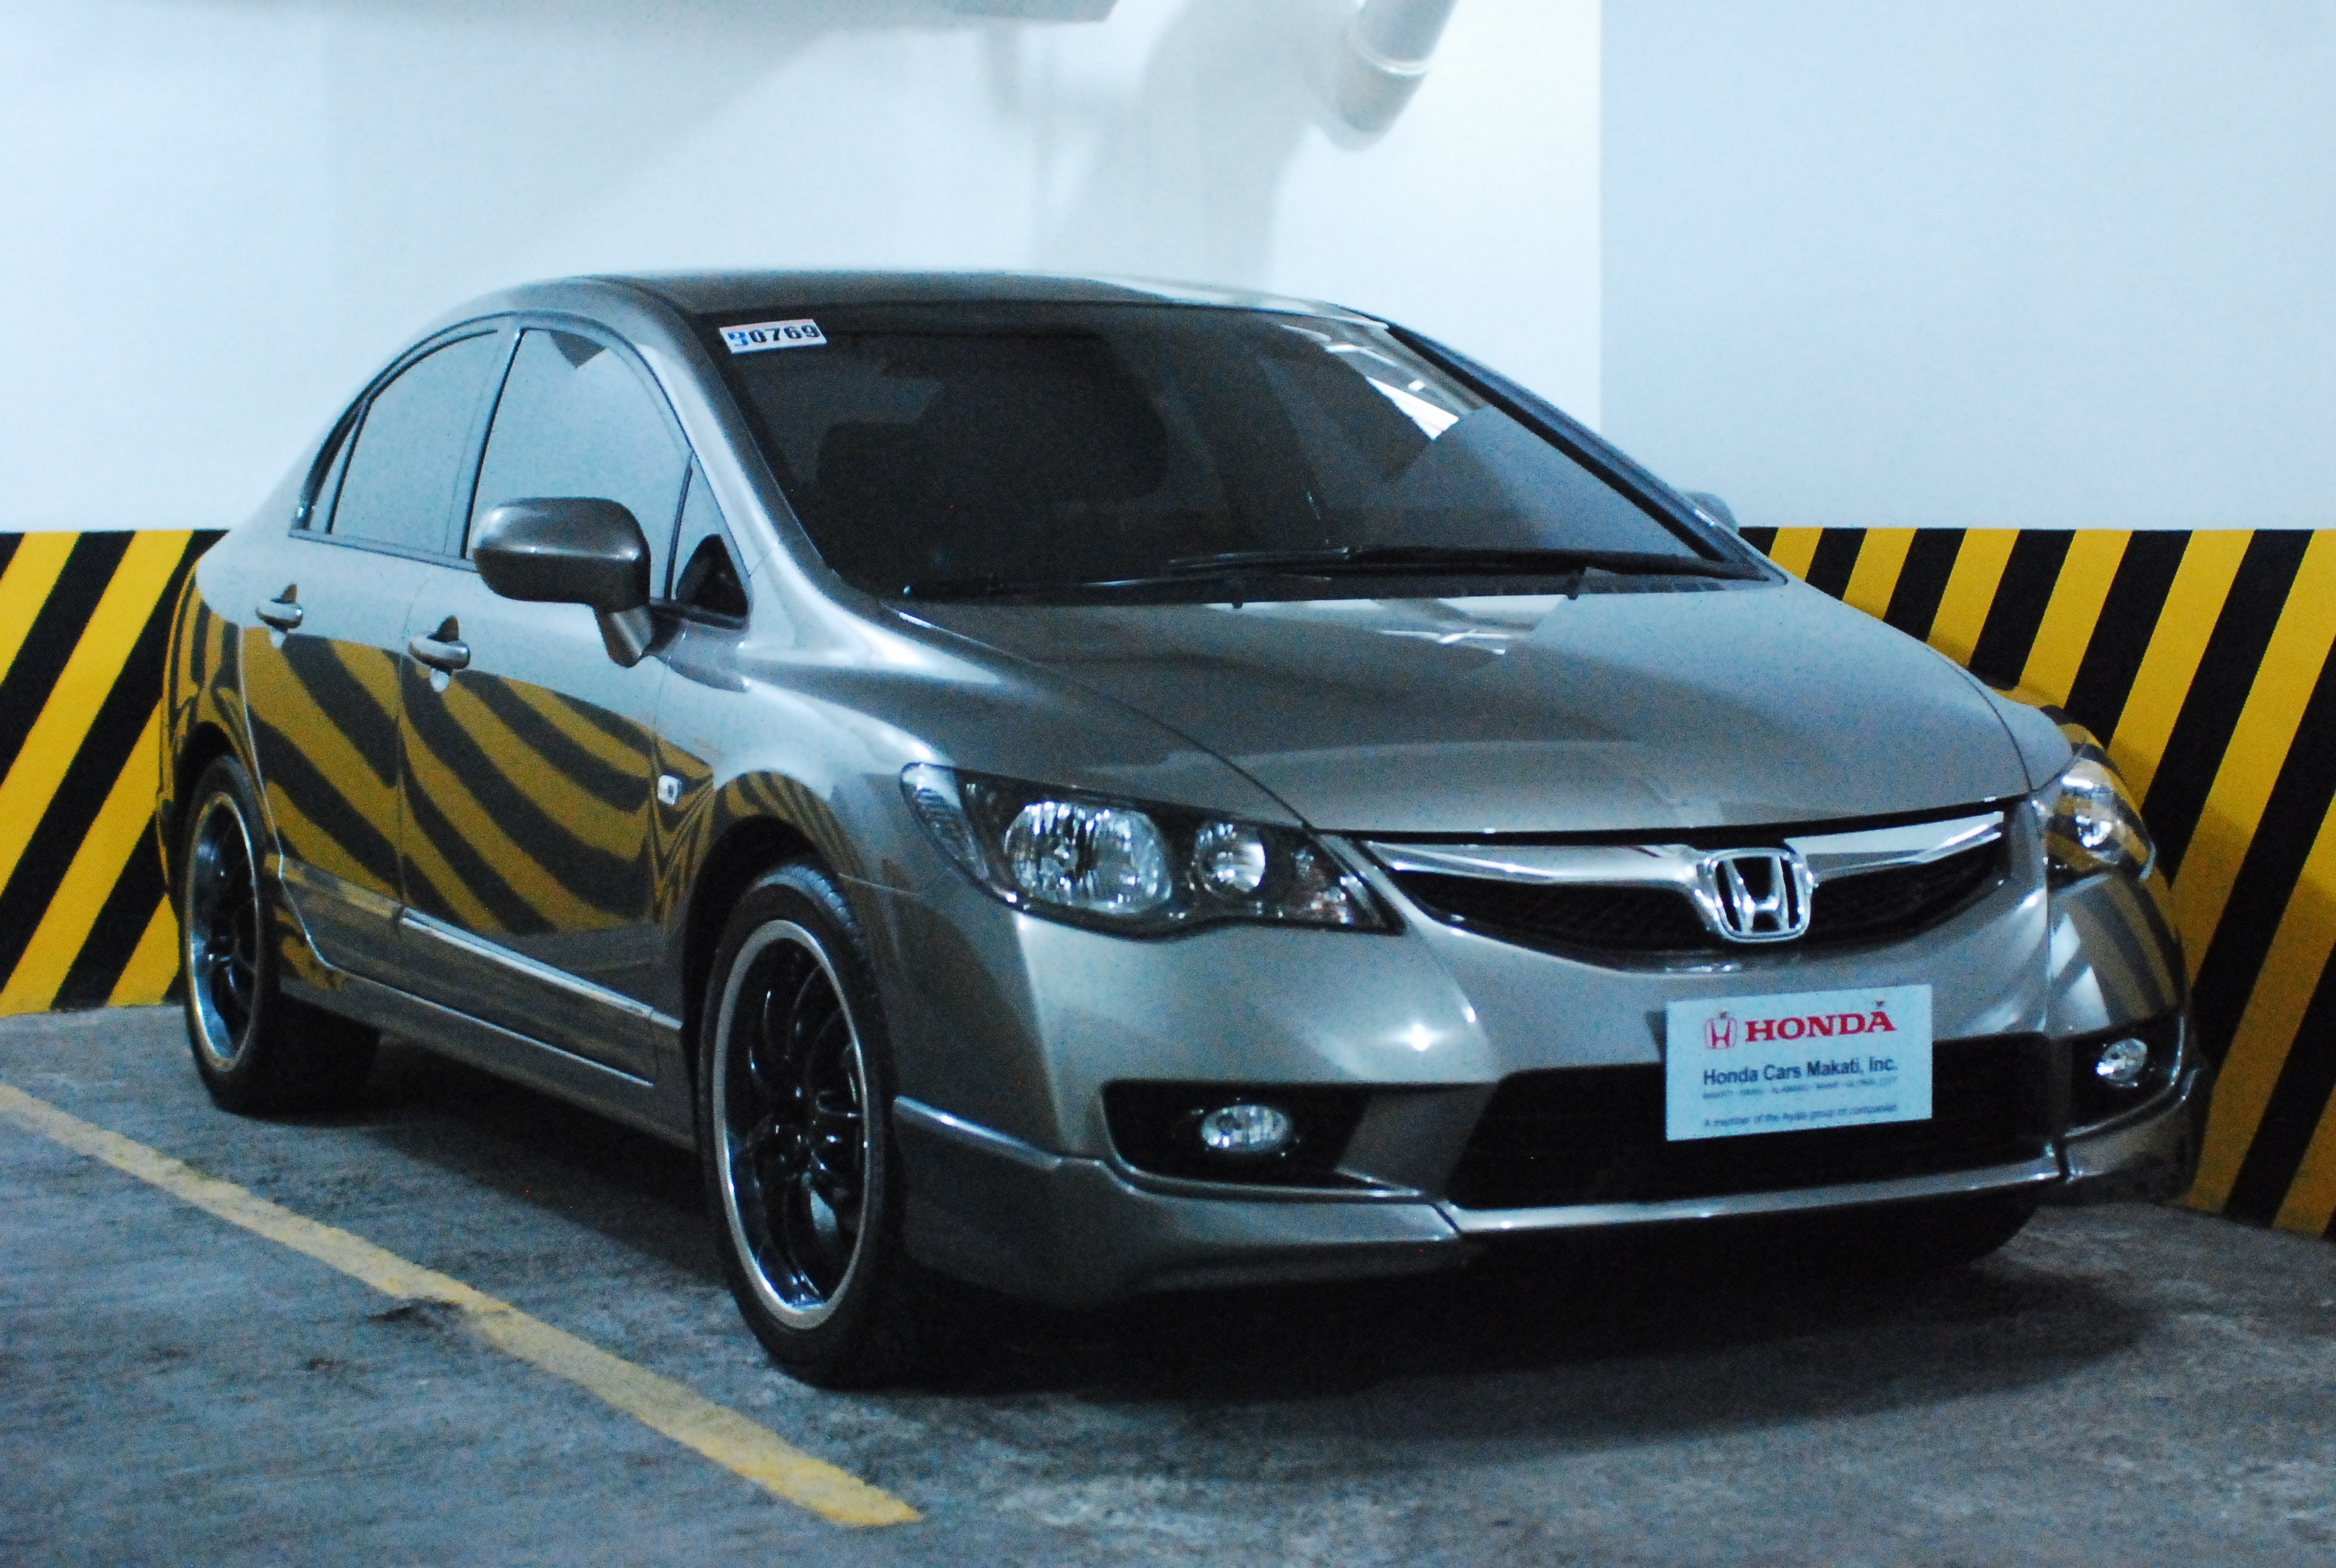 jules04's 2010 Honda Civic